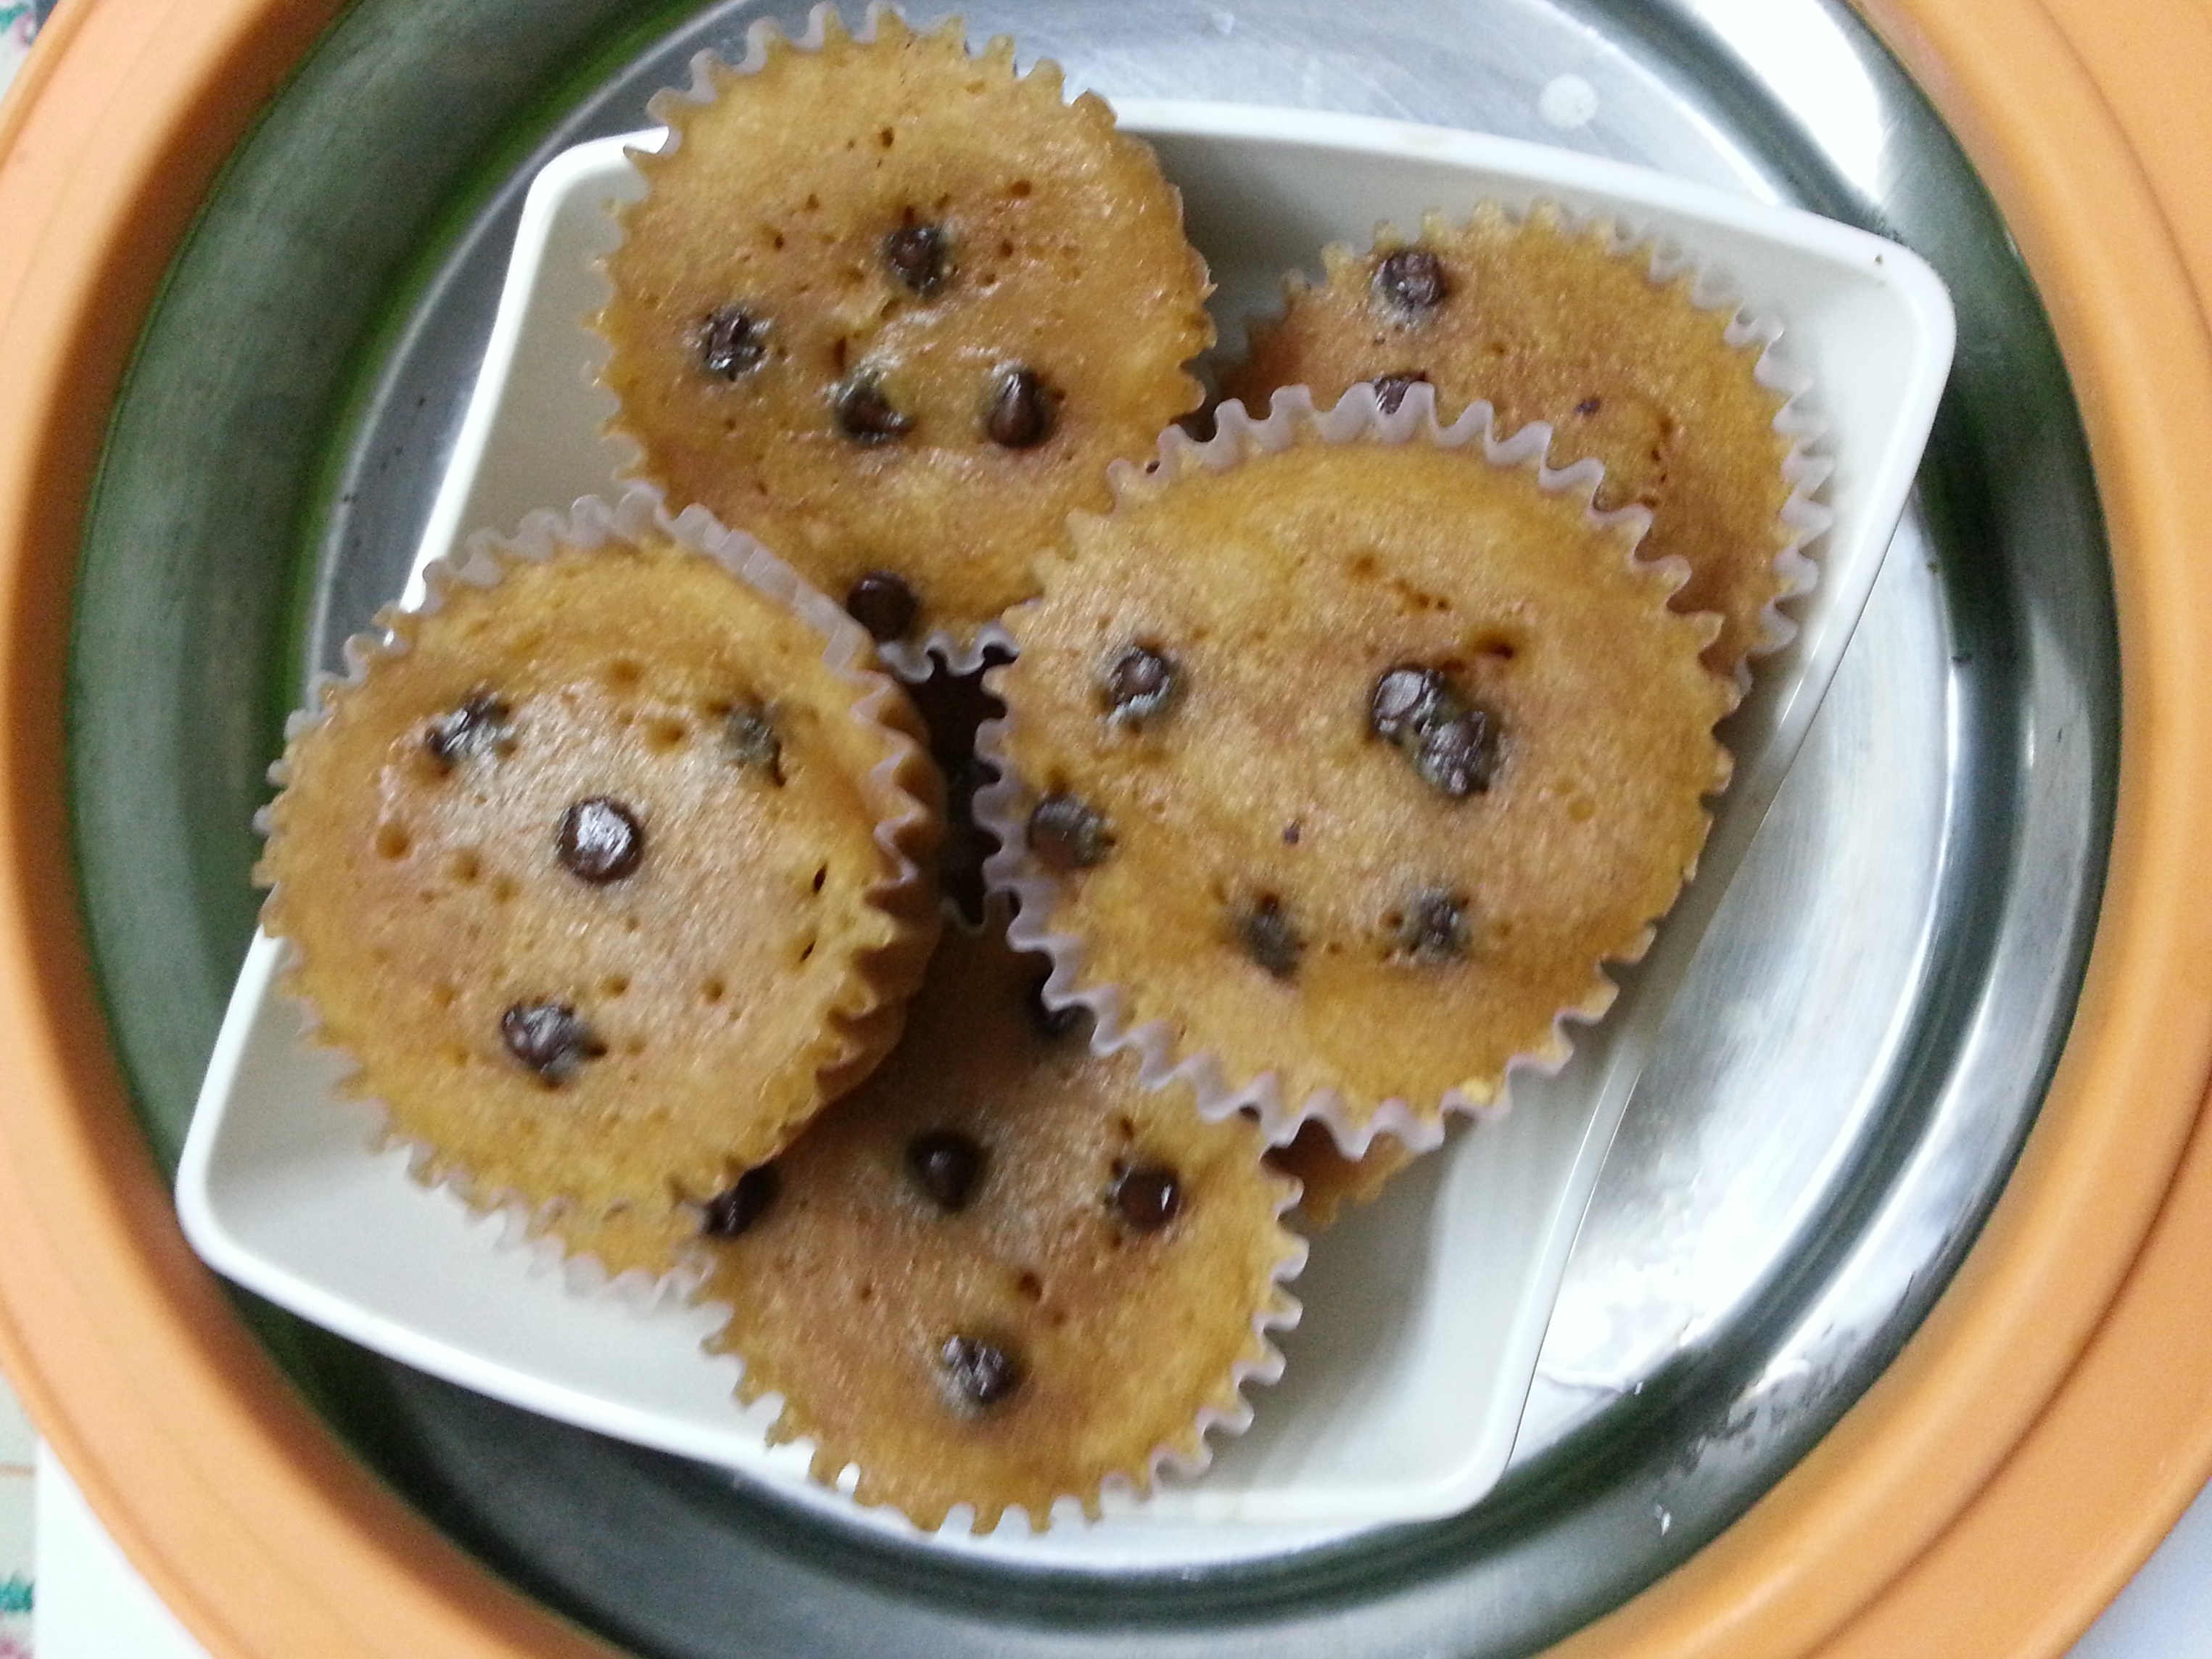 Simple Cake Recipes In Microwave Oven: Biscuit Cup Cakes In Microwave Oven